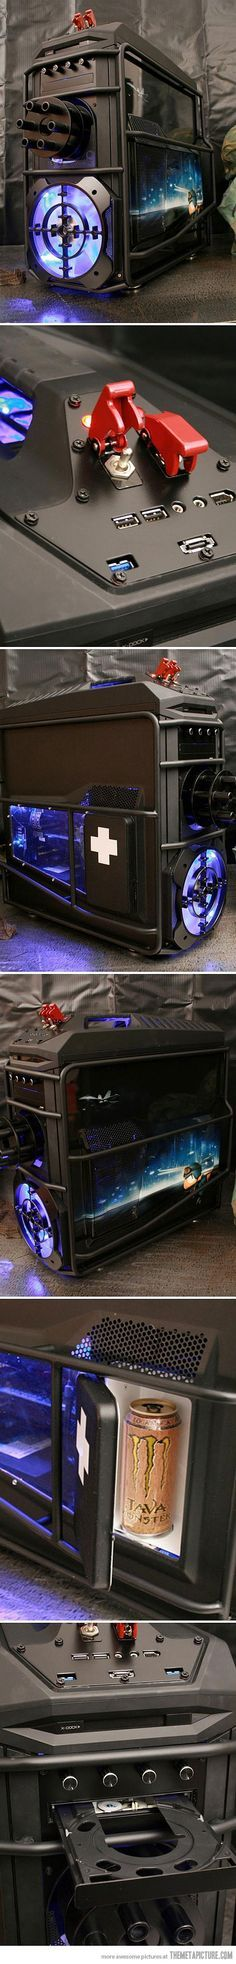 Cool custom PC case.                                                                                                                                                     More